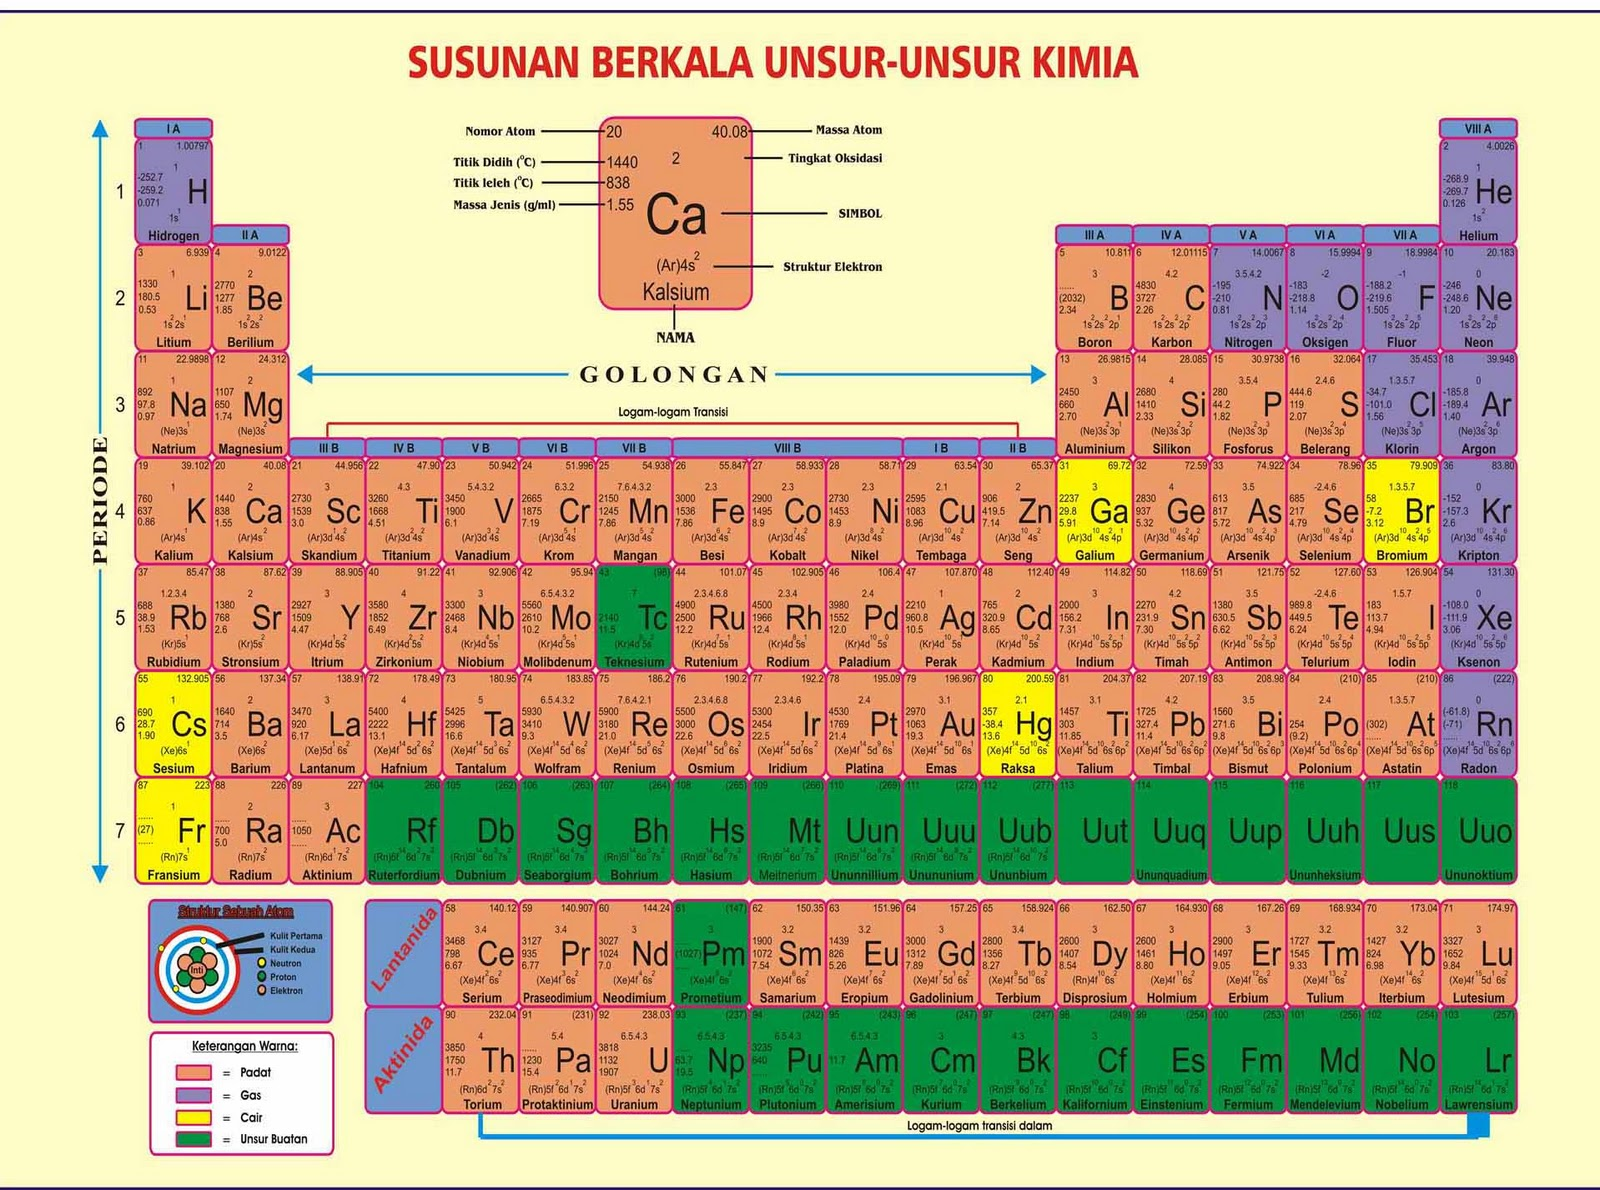 Periodik tabel indonesian periodic tables of the elements michael periodik tabel indonesian periodic tables of the elements michael canov from czech republic urtaz Image collections